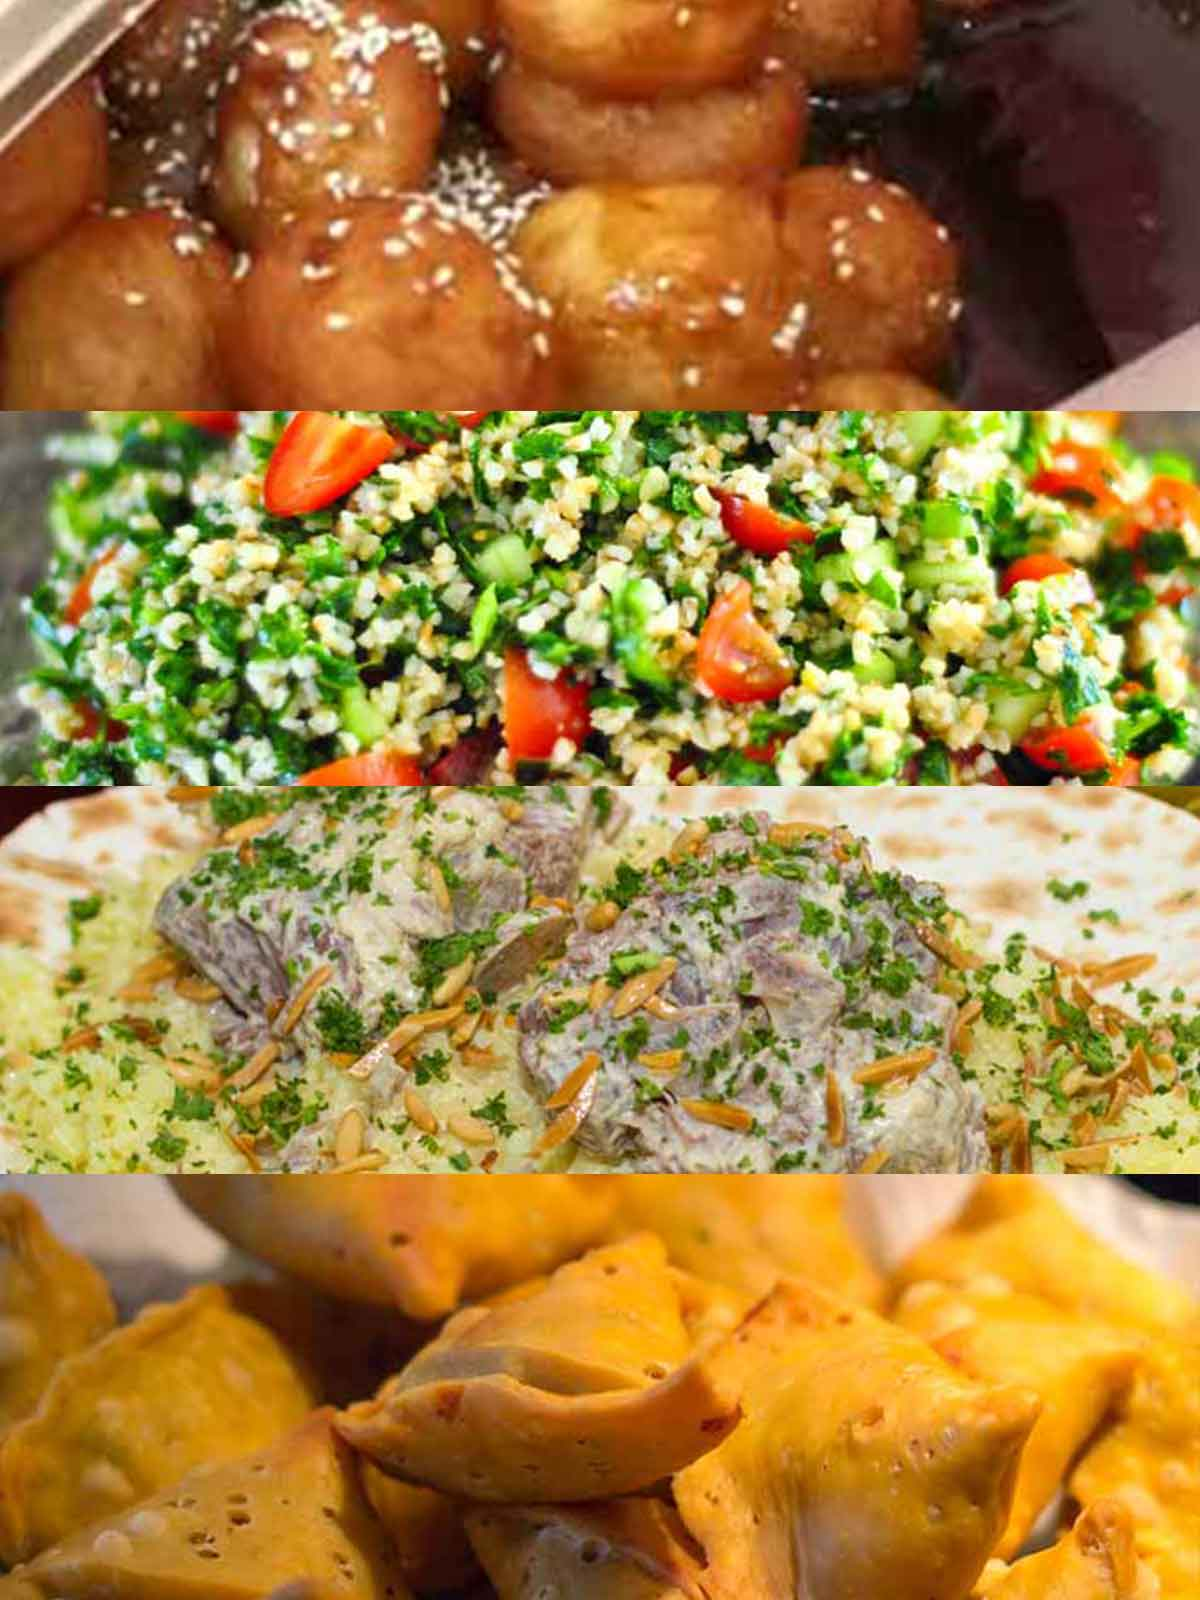 Collage of various Jordanian dishes